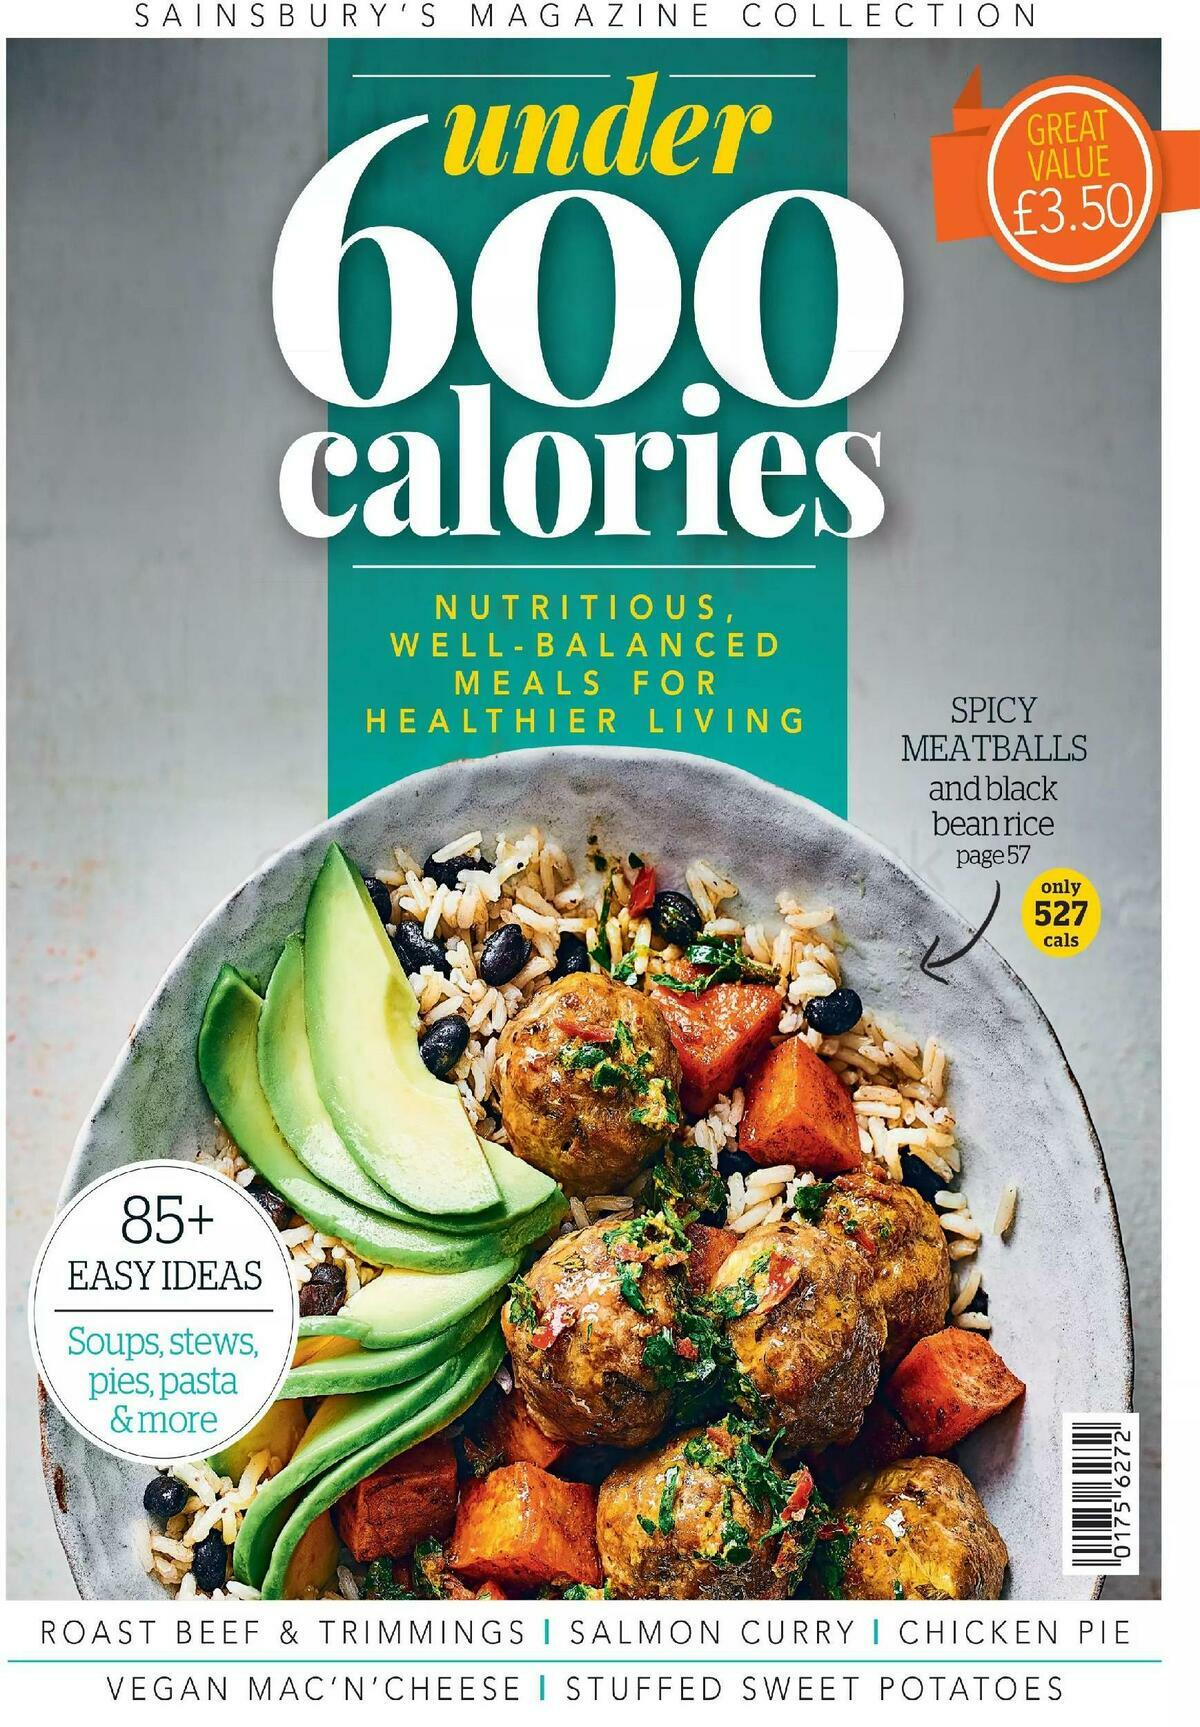 Sainsbury's Magazine Collection - Under 600 Calories Offers from January 20